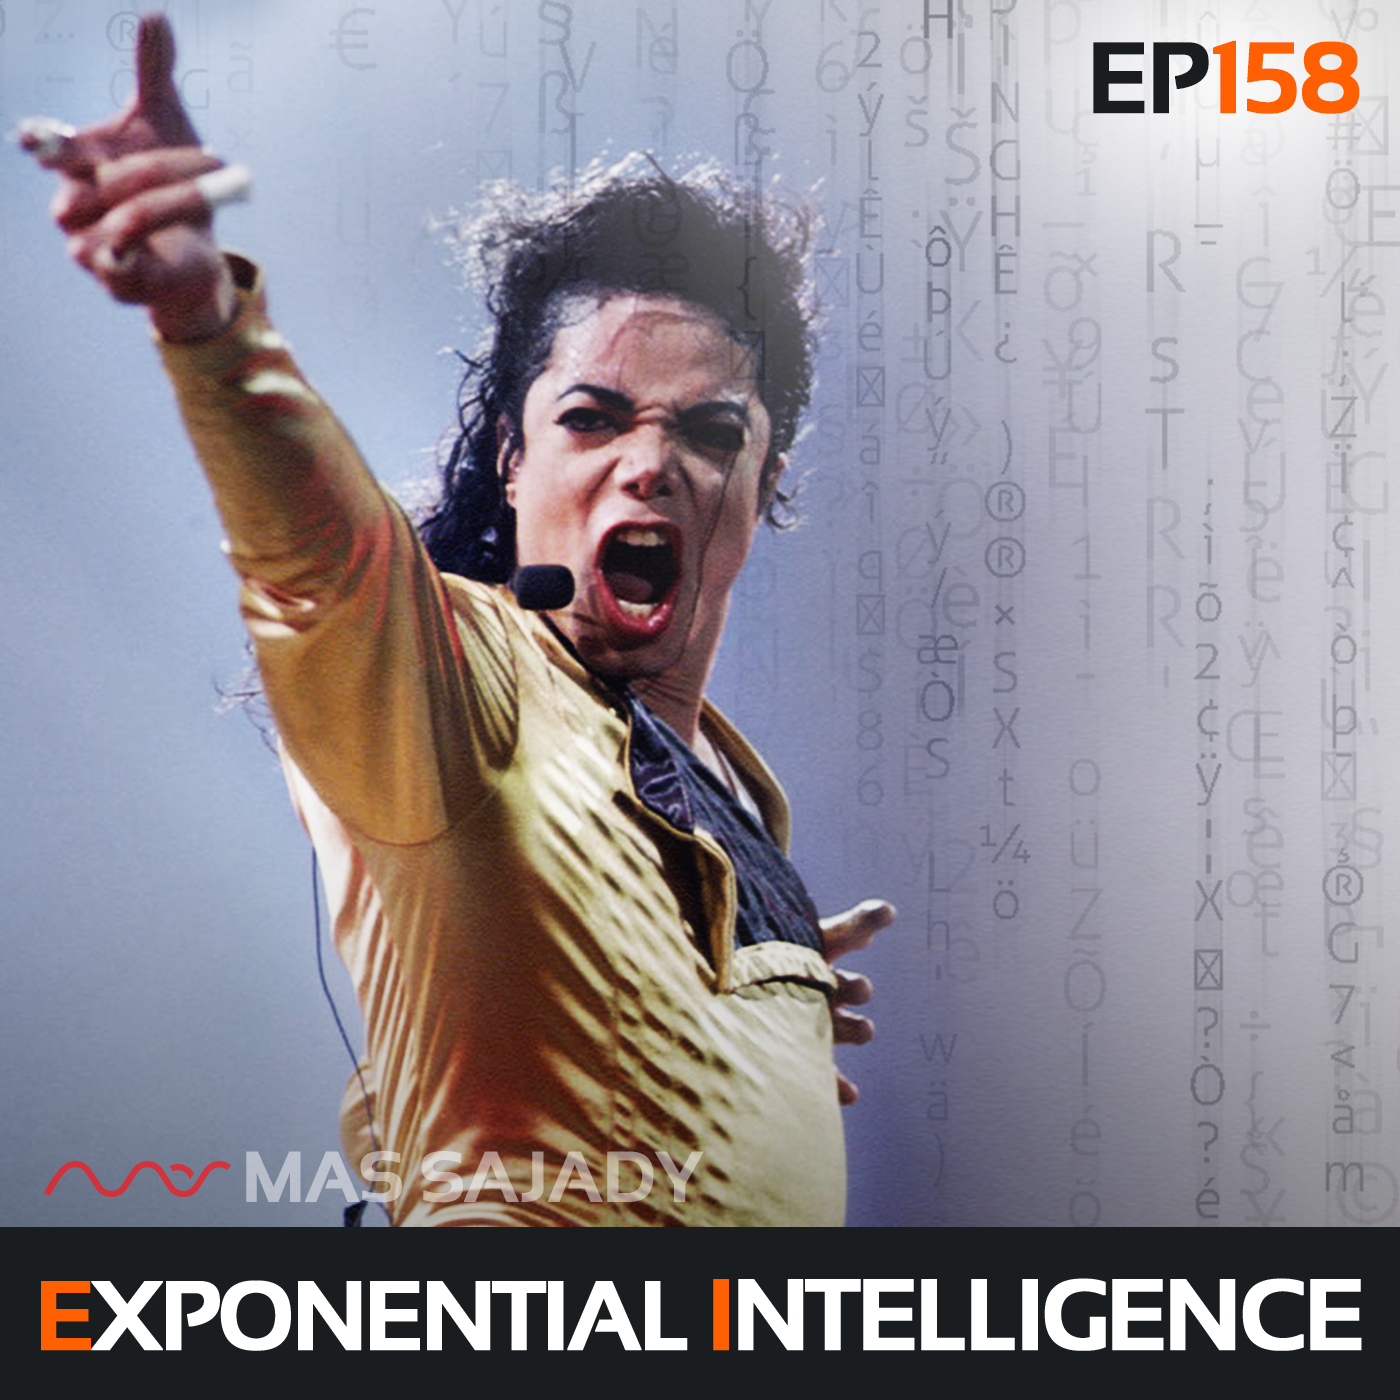 mas-sajady-exponential-intelligence-podcast-michael-jackson-live-conversations-with-dead-people.png